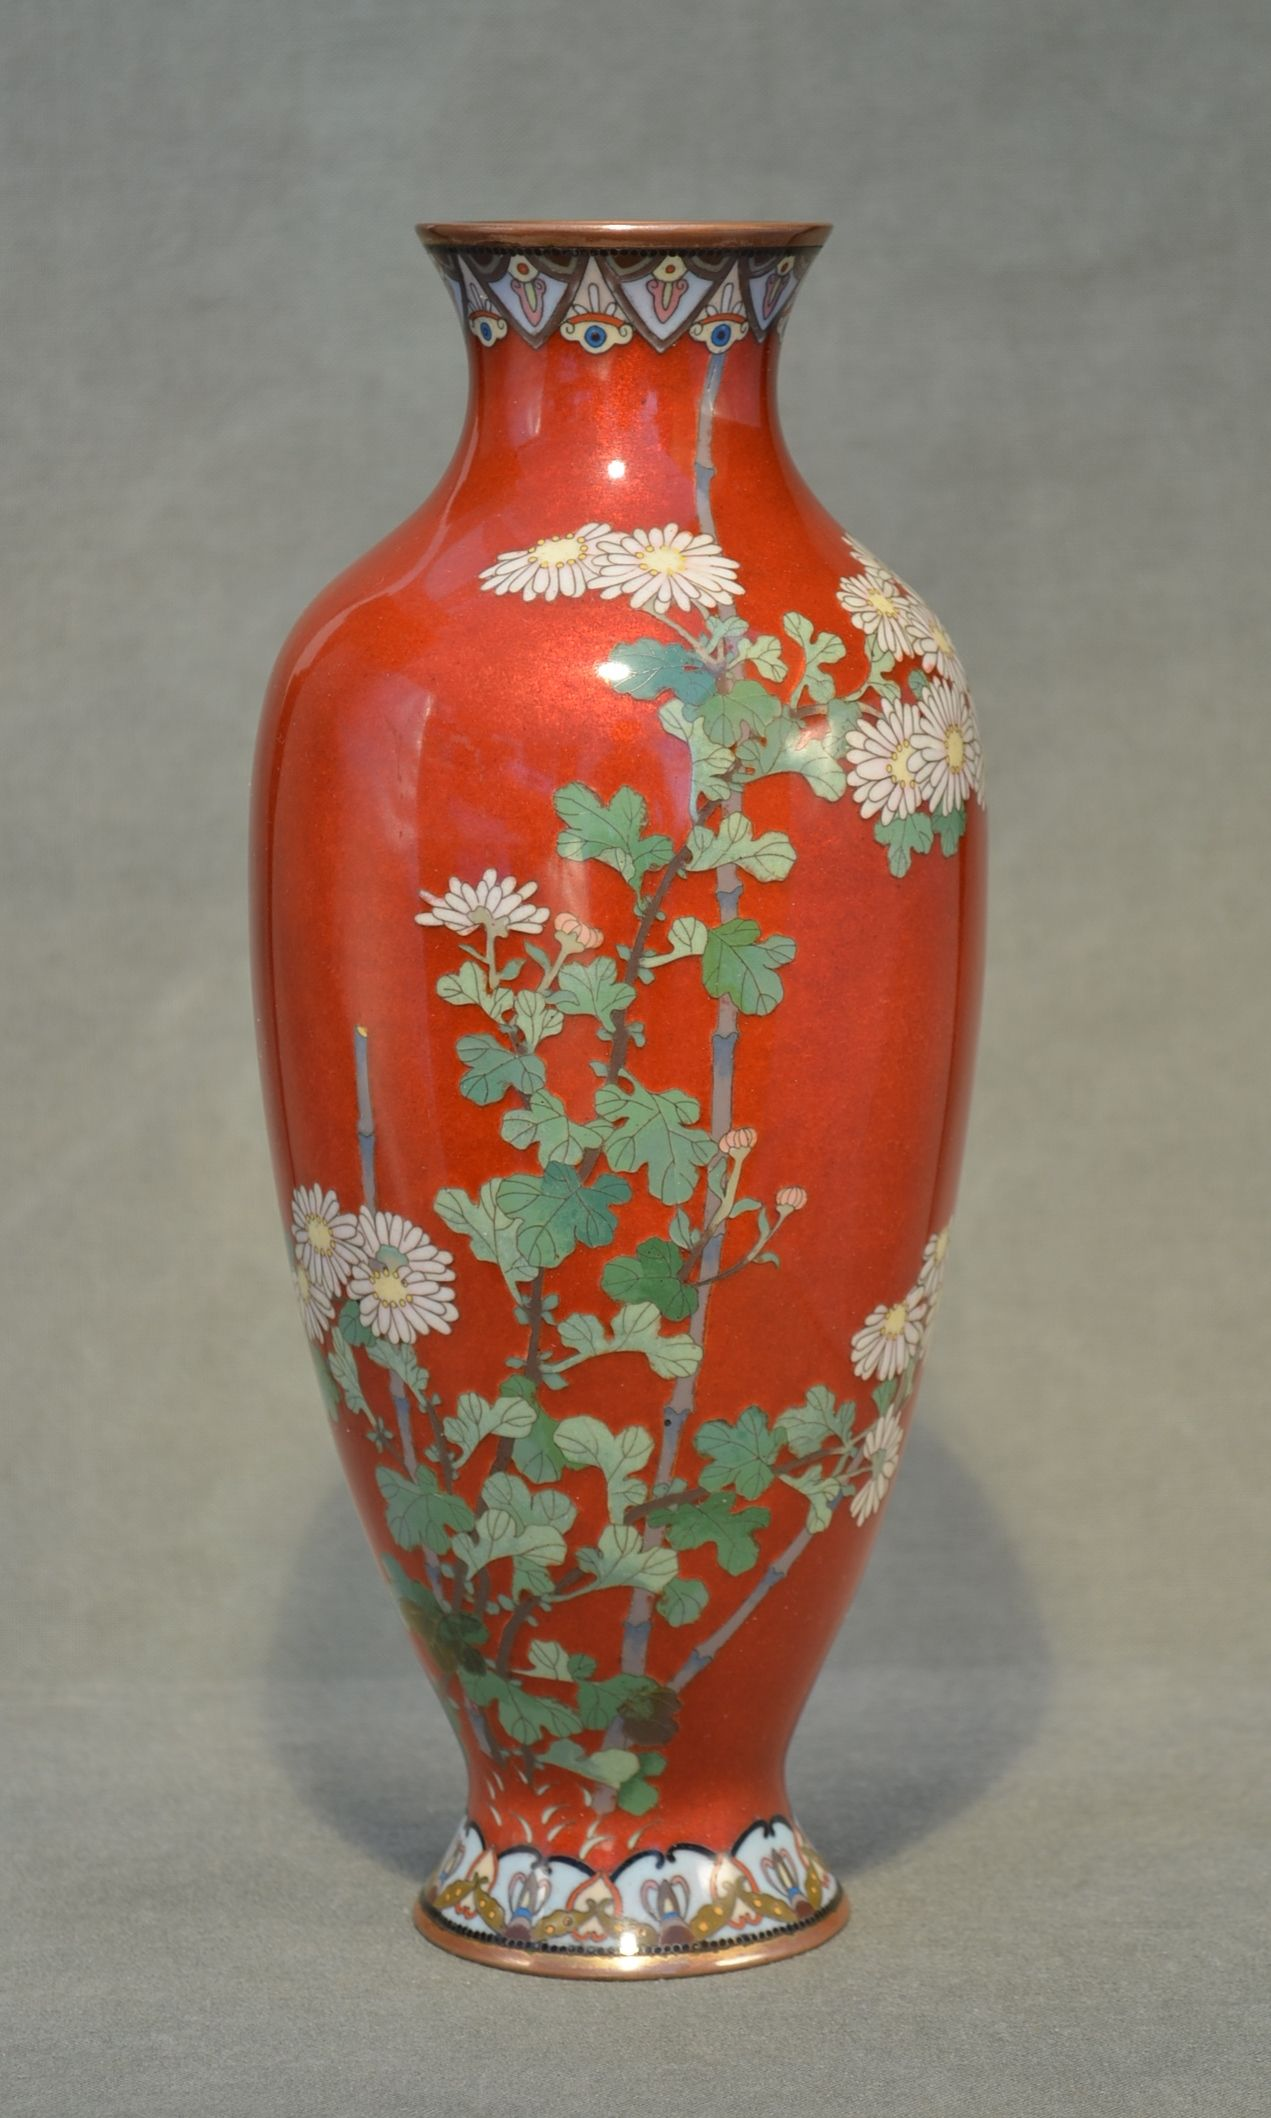 Title: A pair of Cloisonné Vase Description: decroated flowers in silver wire on red background Artist: unsigned Date: circa 1900 SIze: 25cm high